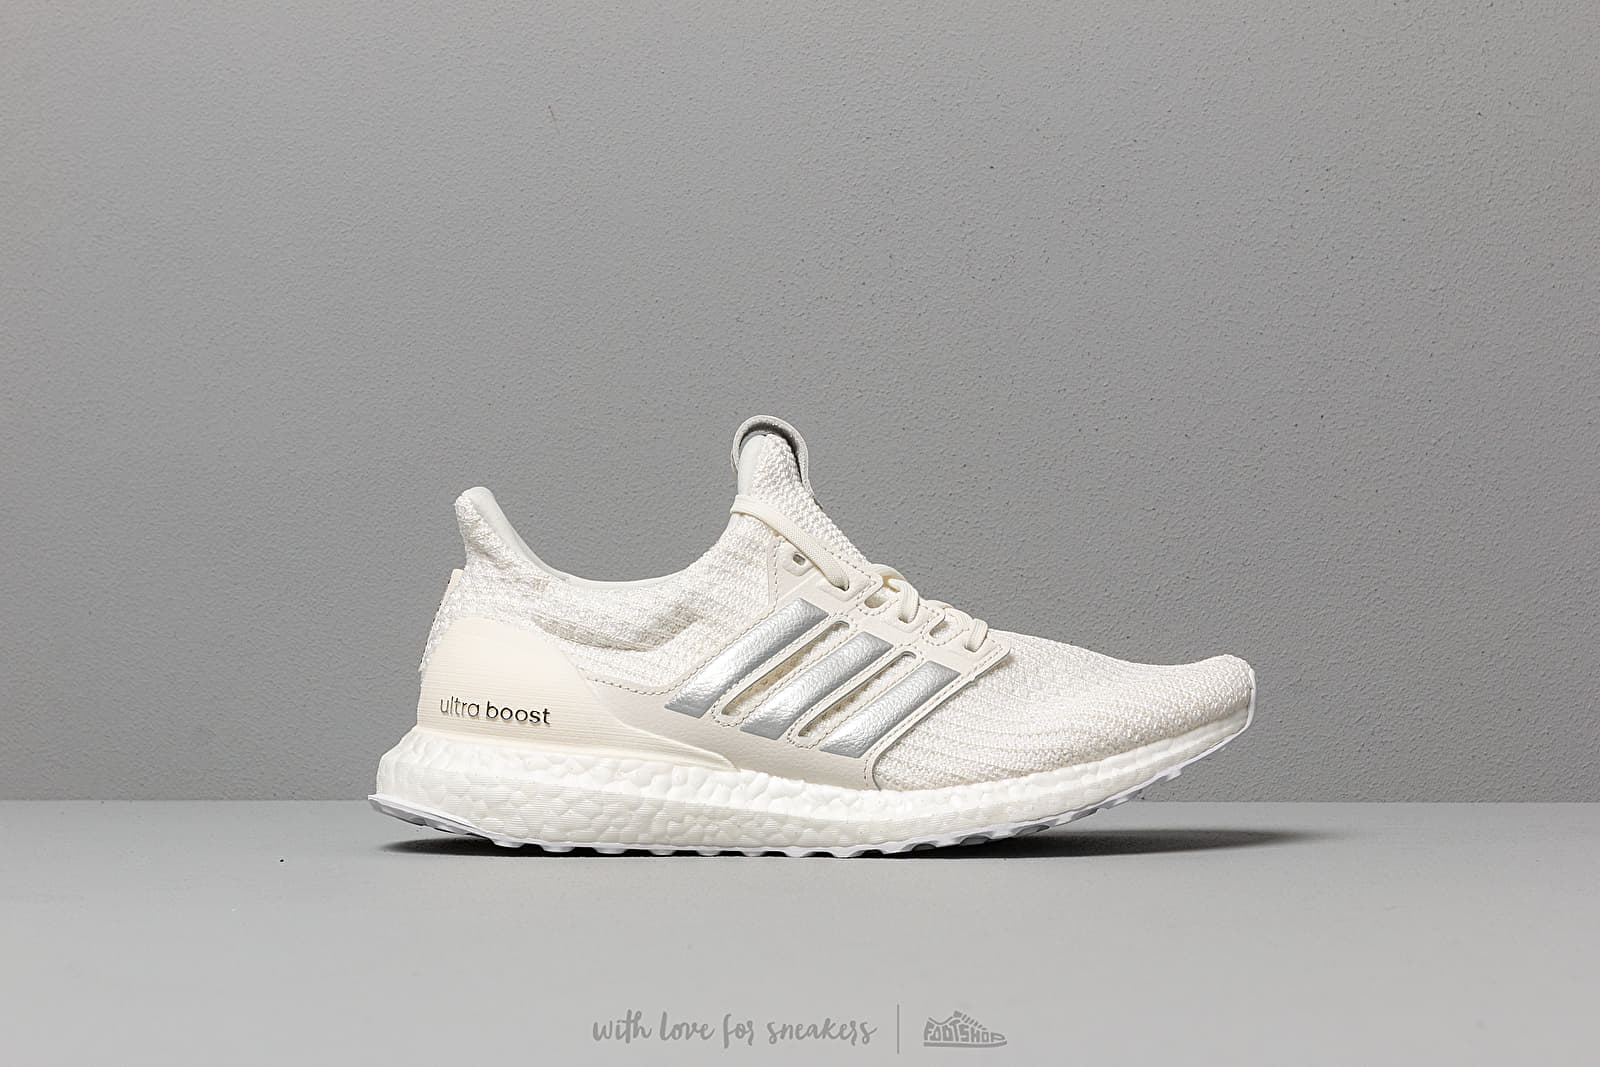 71dac99774641 adidas x Game of Thrones UltraBOOST W Off White  Silver Metallic  Core  Black at